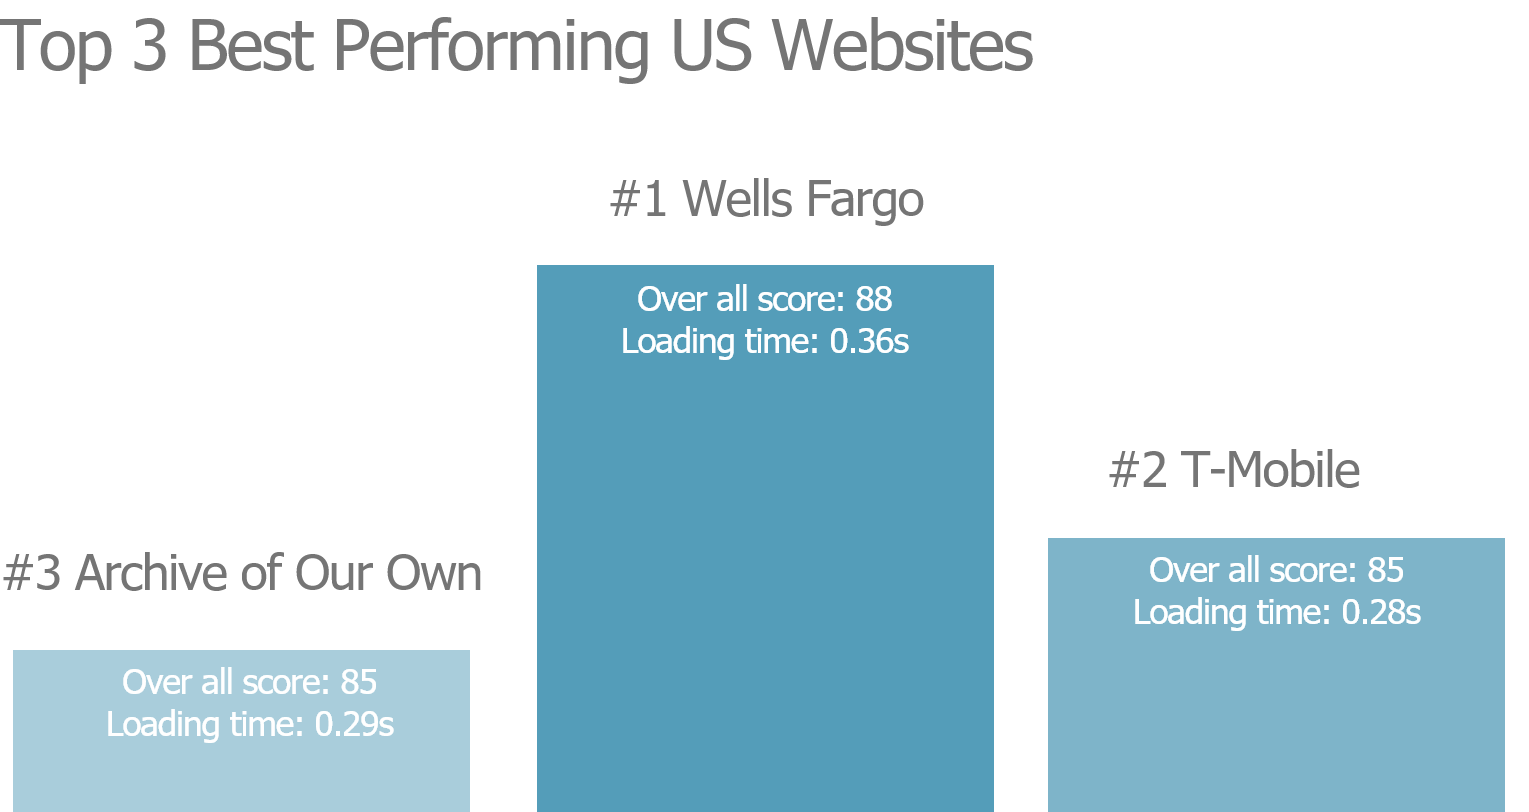 The best of the most popular website in the US market are Wells Fargo, T-Mobile, and Archive of Our Own.